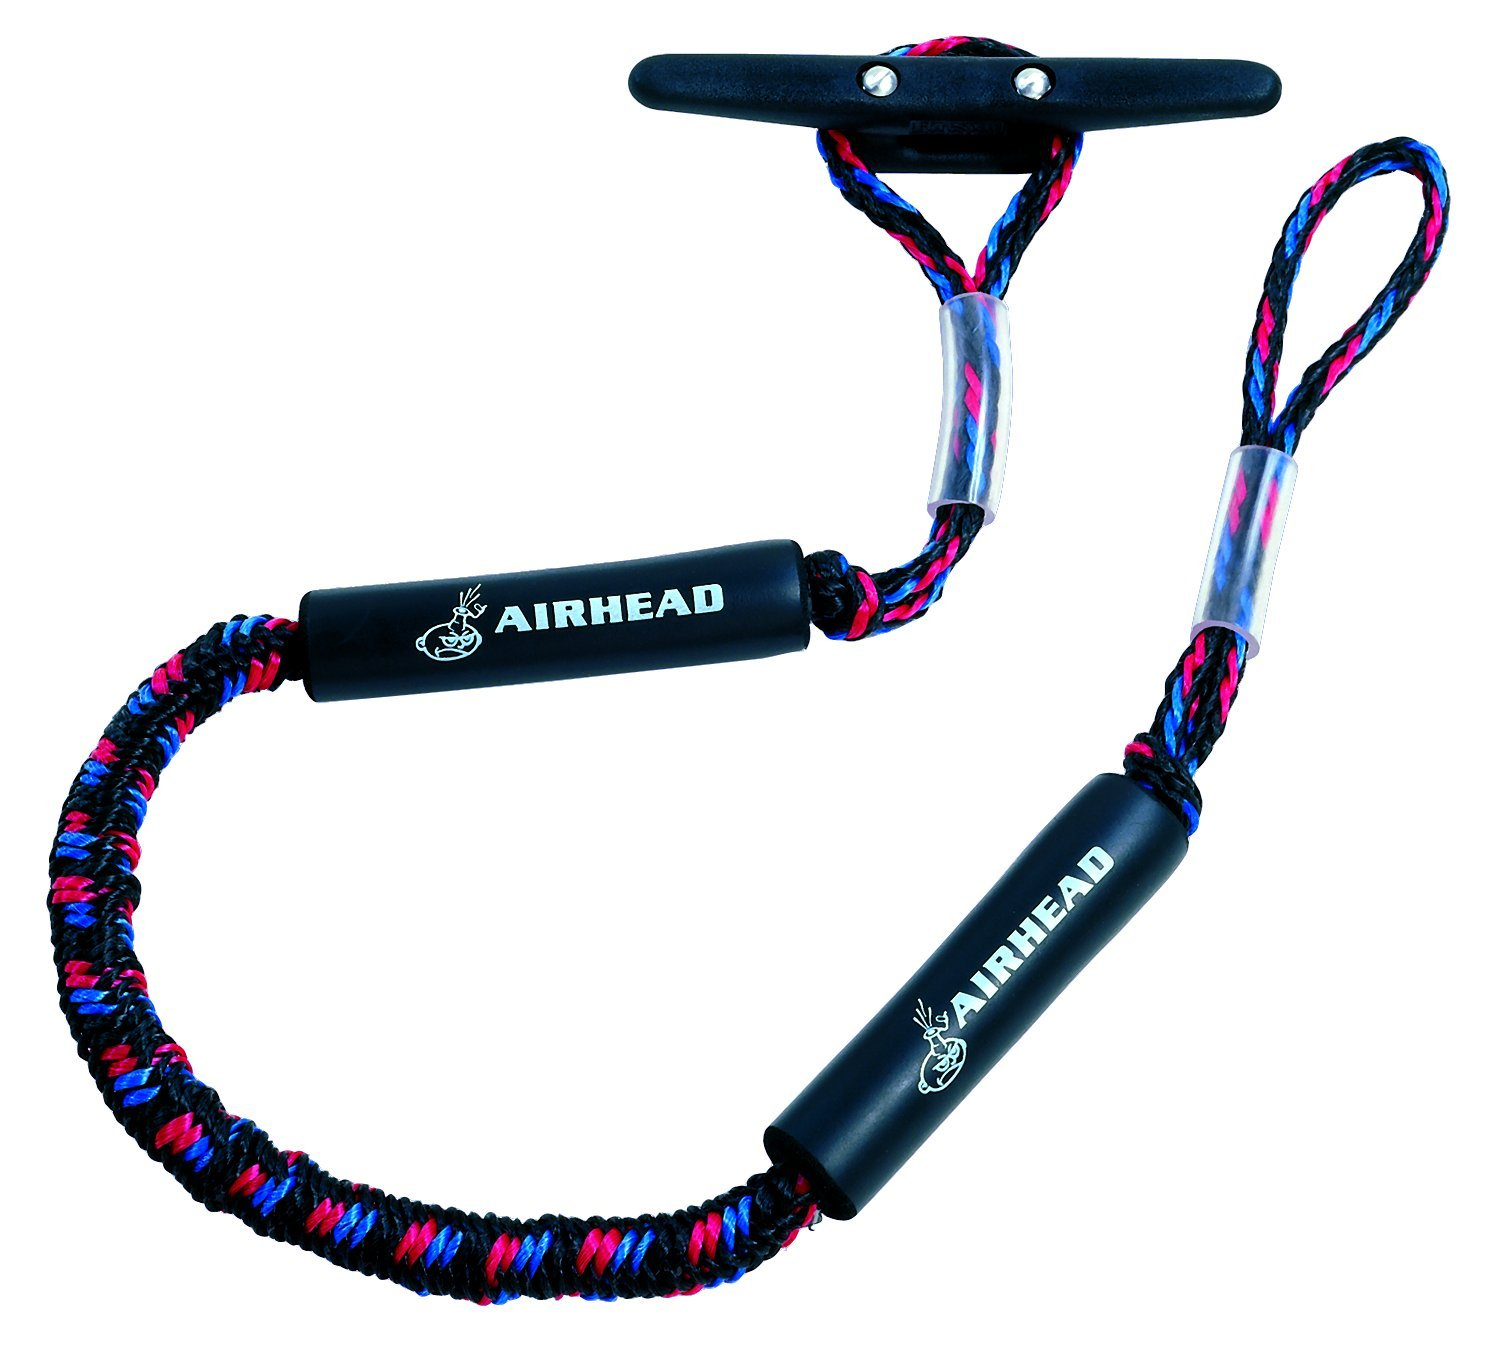 """AIRHEAD AHDL-5 Bungee Dock LINE 5', 60"""", Black/blue/red"""